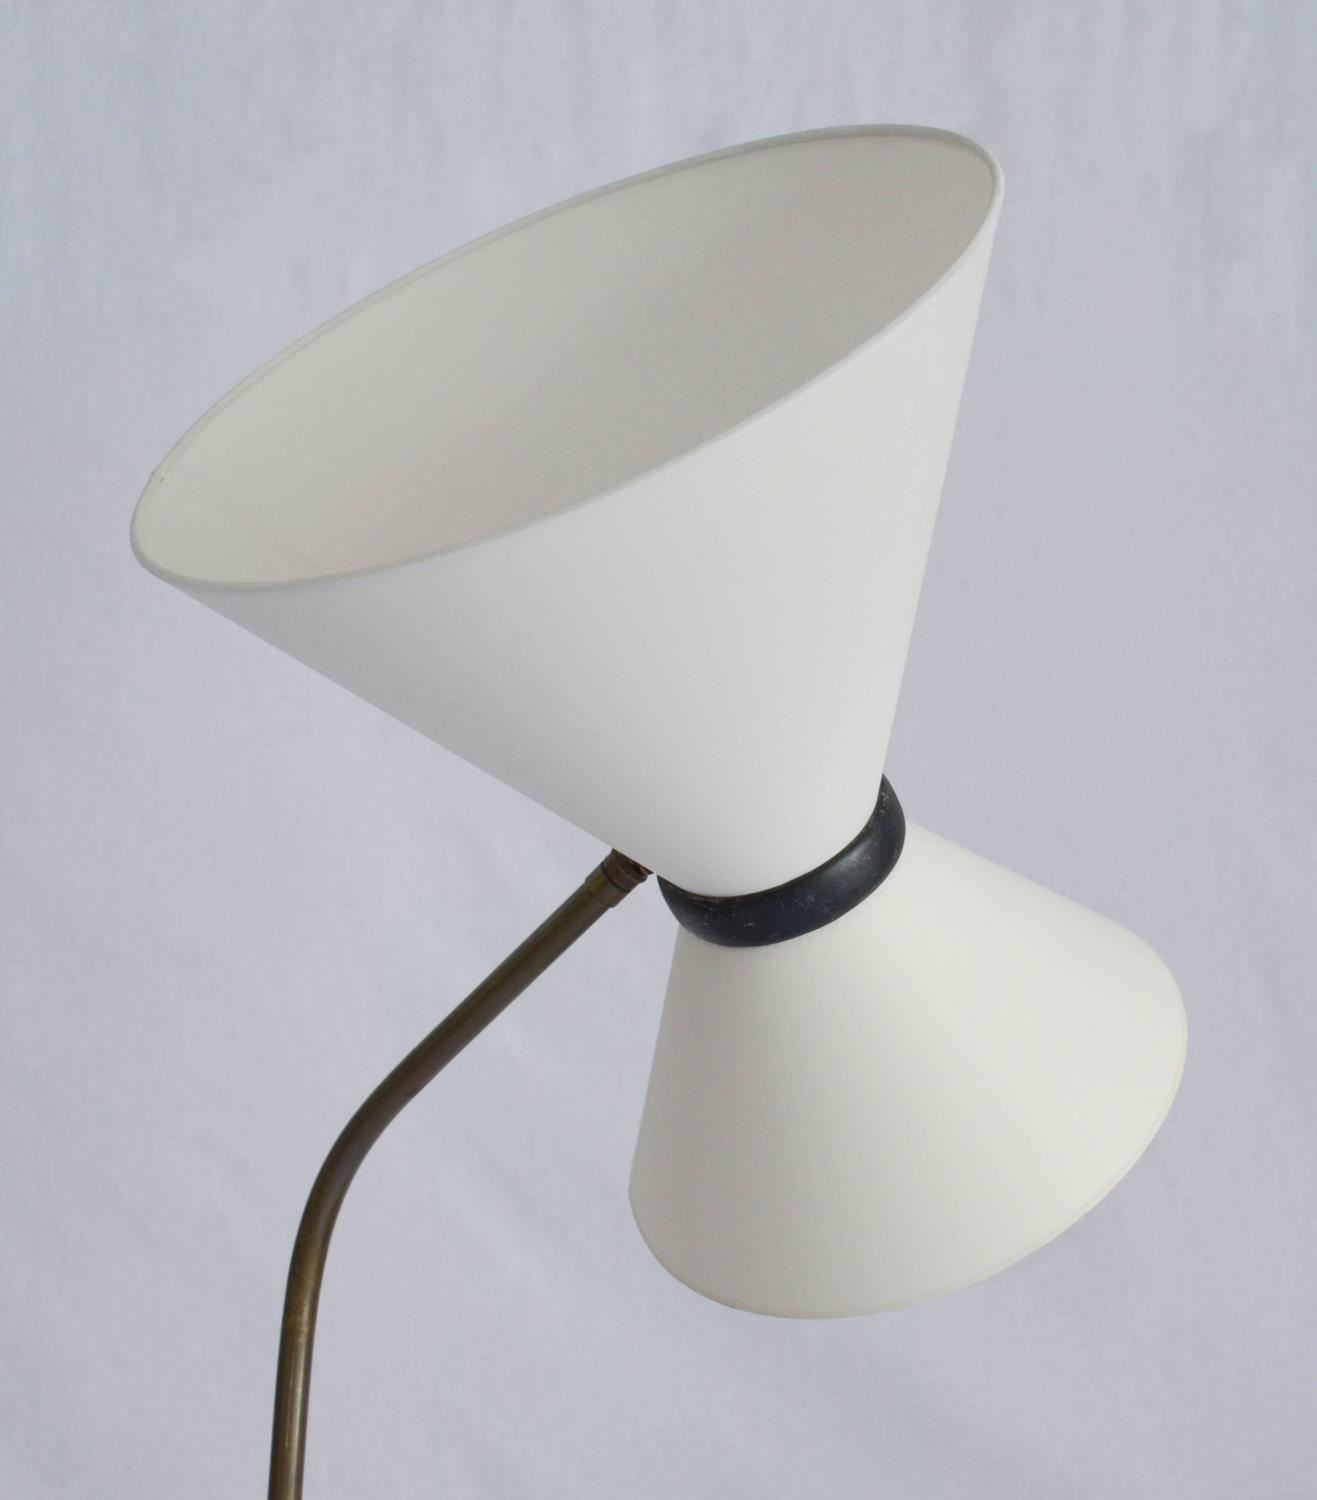 style brass floor lamp with ivory paper shade for sale at 1stdibs. Black Bedroom Furniture Sets. Home Design Ideas